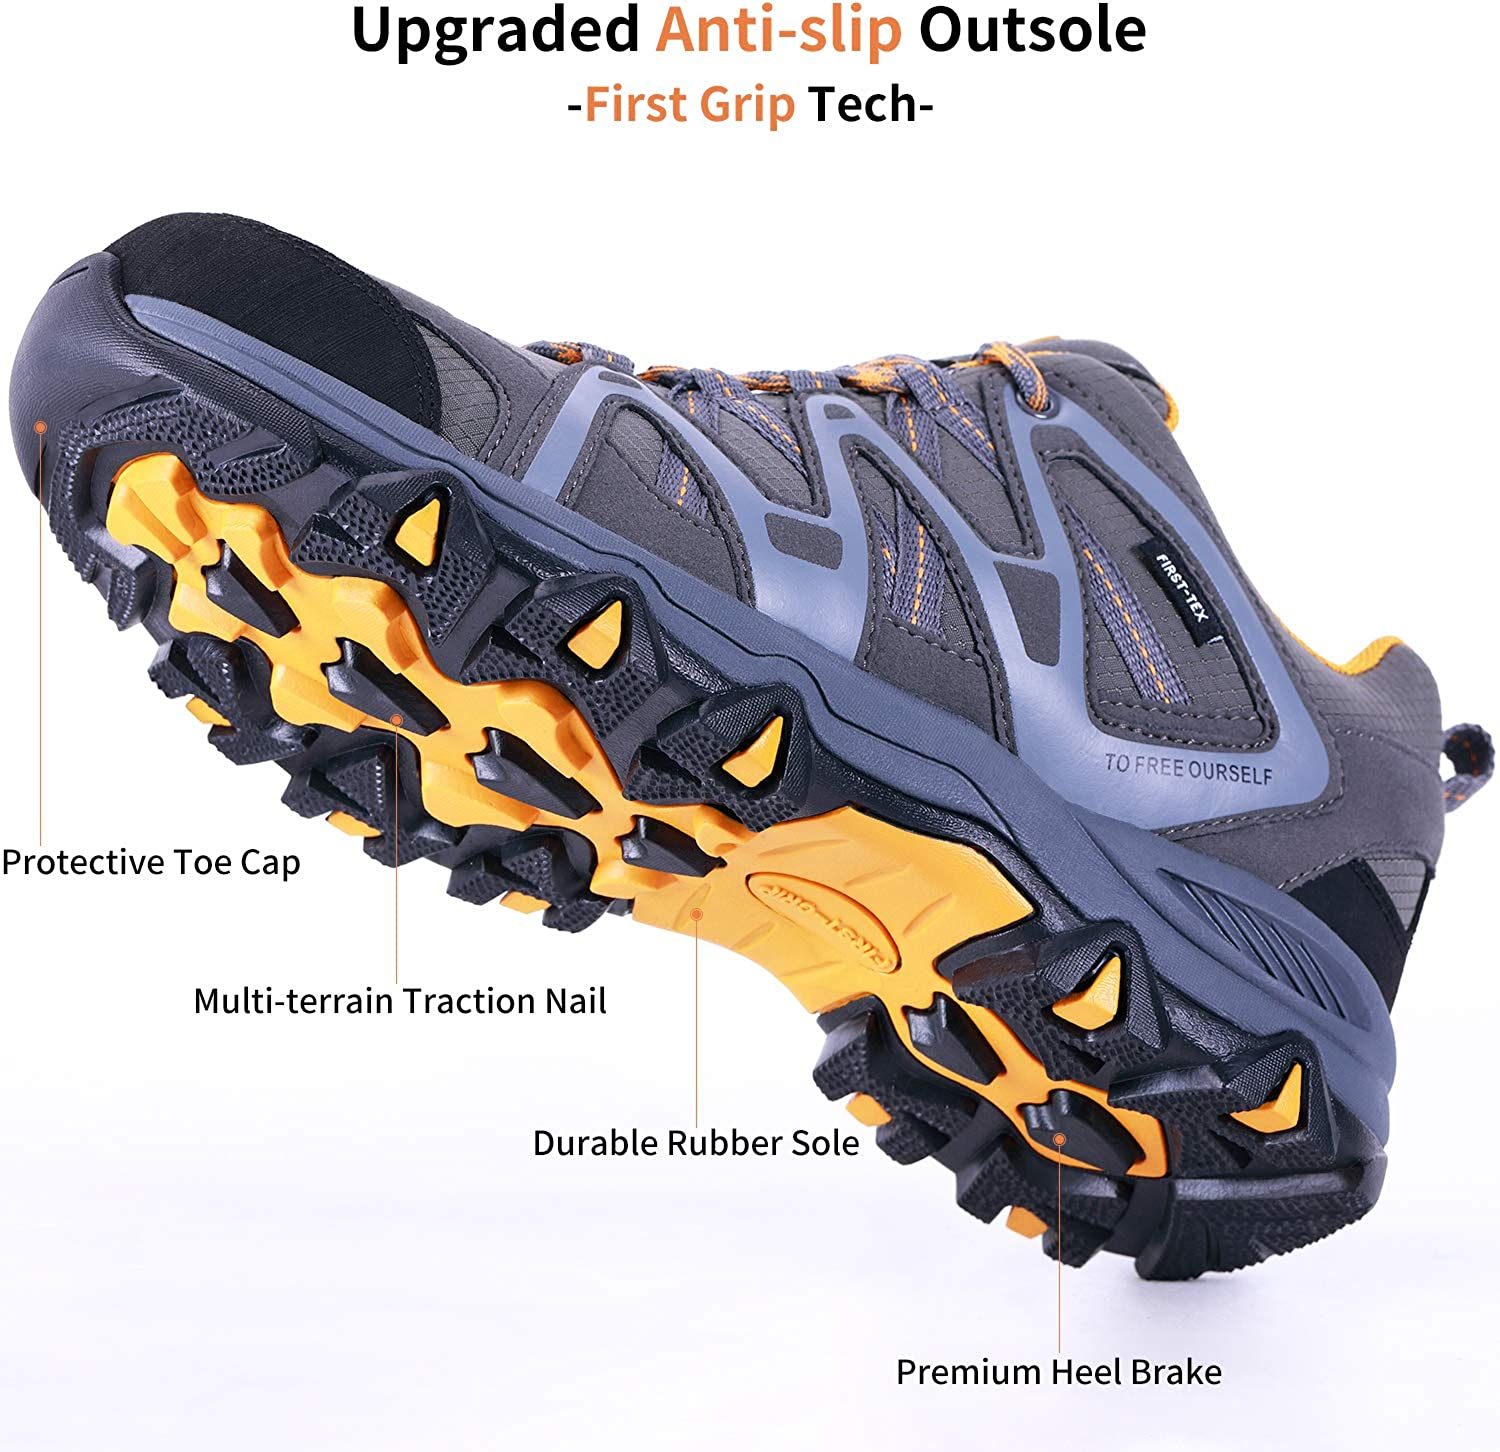 TFO Hiking Shoes Men Waterproof Air Circulation Insole Ankle Support Non-Slip Lightweight for Outdoor Trekking Walking